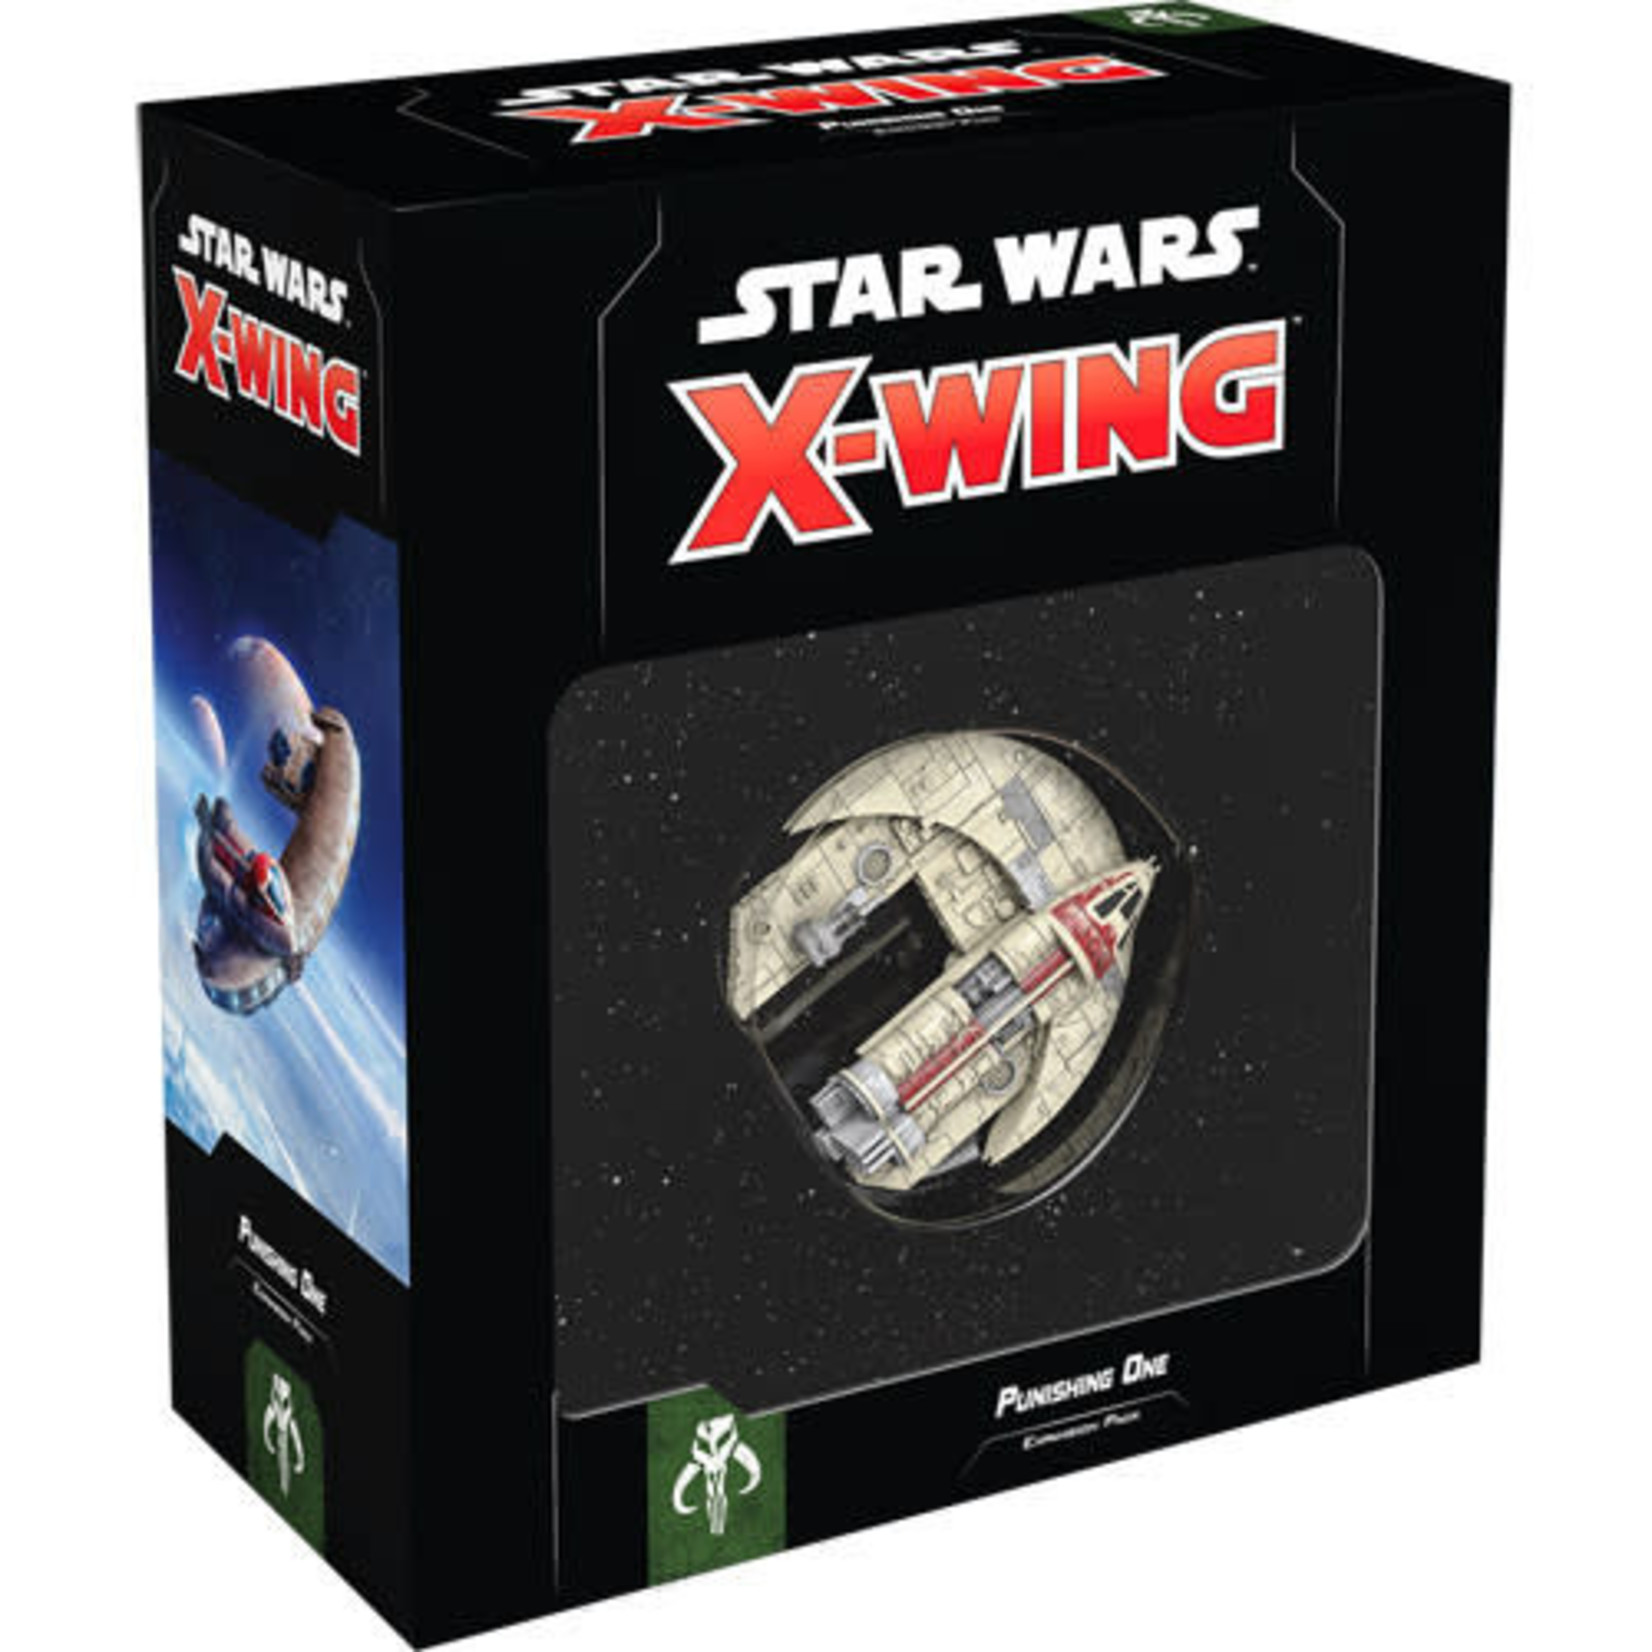 Star Wars X-Wing 2e: Punishing One Expansion Pack